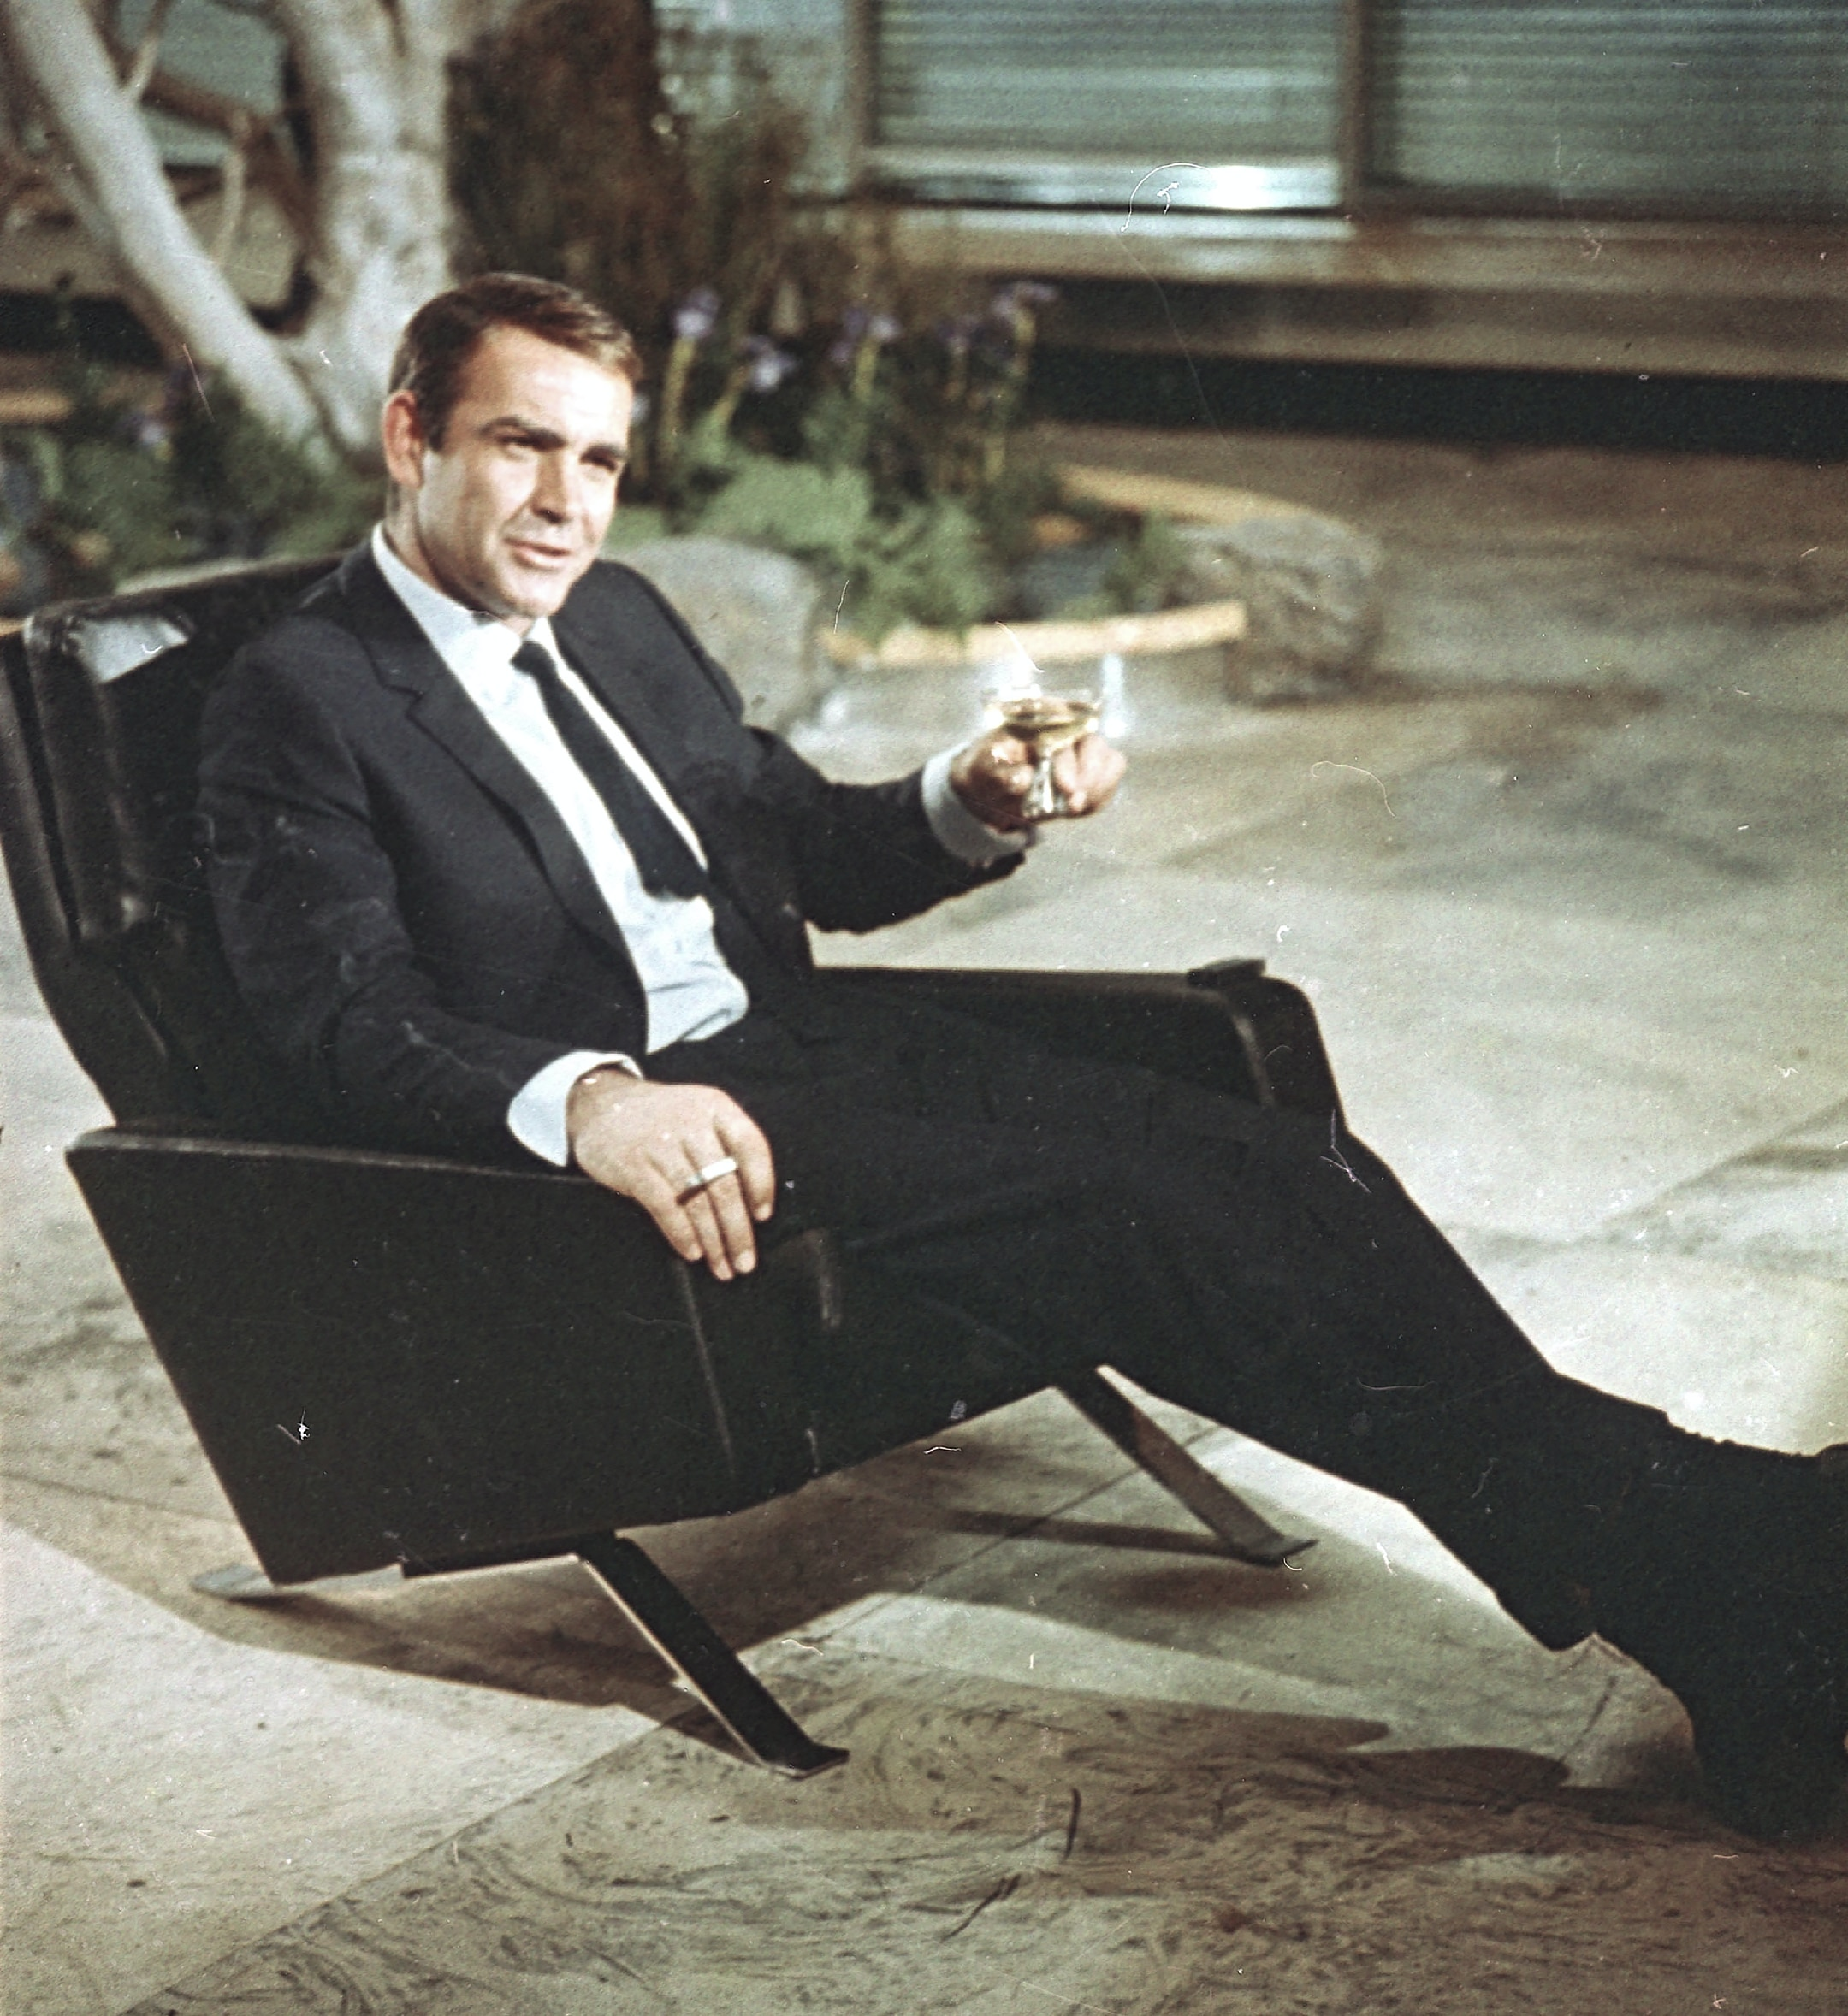 """Sean Connery pictured during filming the James Bond movie """"You Only Live Twice"""" on location in Tokyo, Japan on 29 July 1966."""